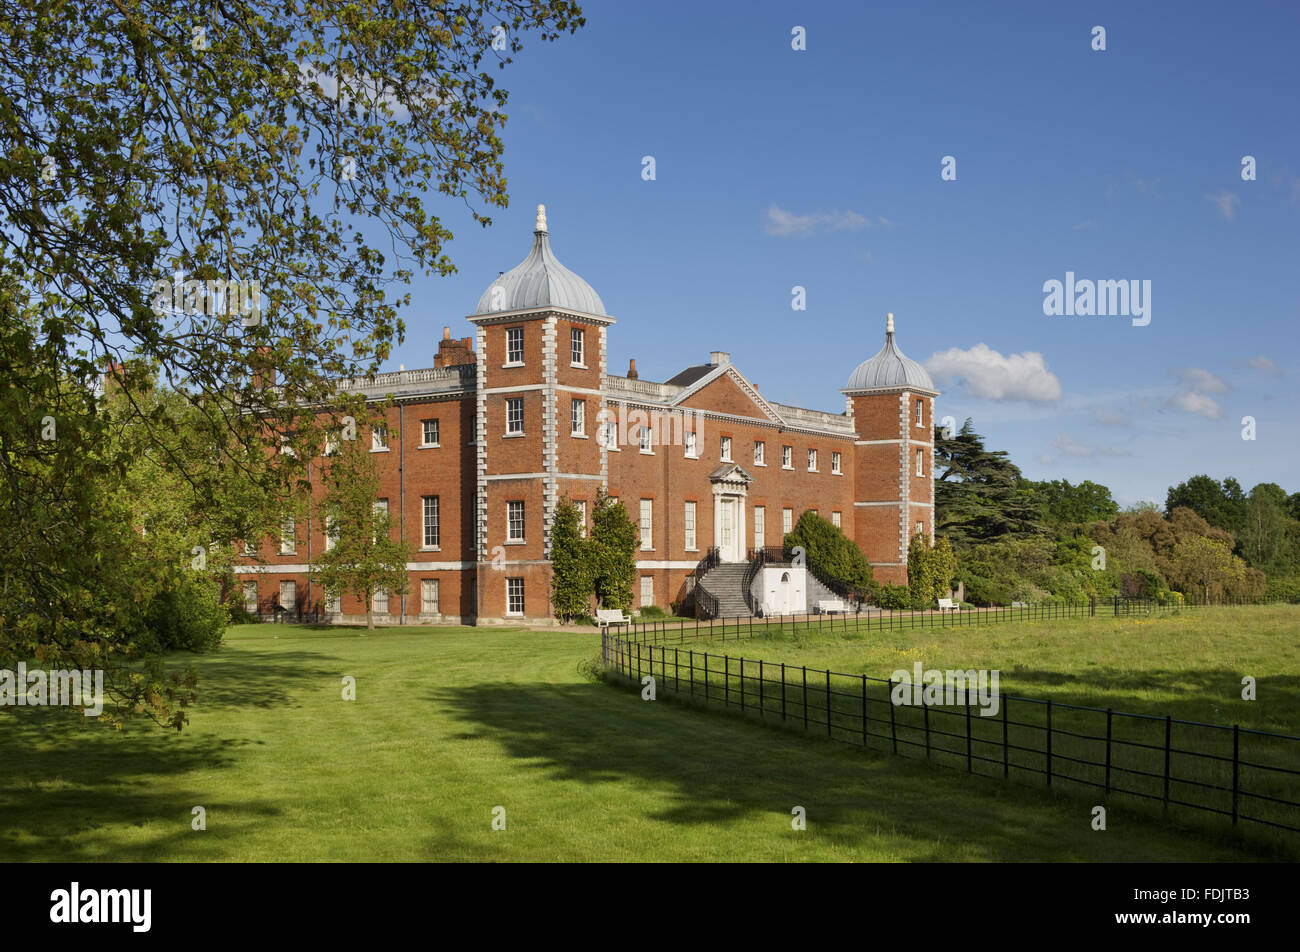 The west or garden front of the house with curved stairs at Osterley, Middlesex. The house was originally Elizabethan, and remodelled in 1760 - 80 by Robert Adam. Stock Photo